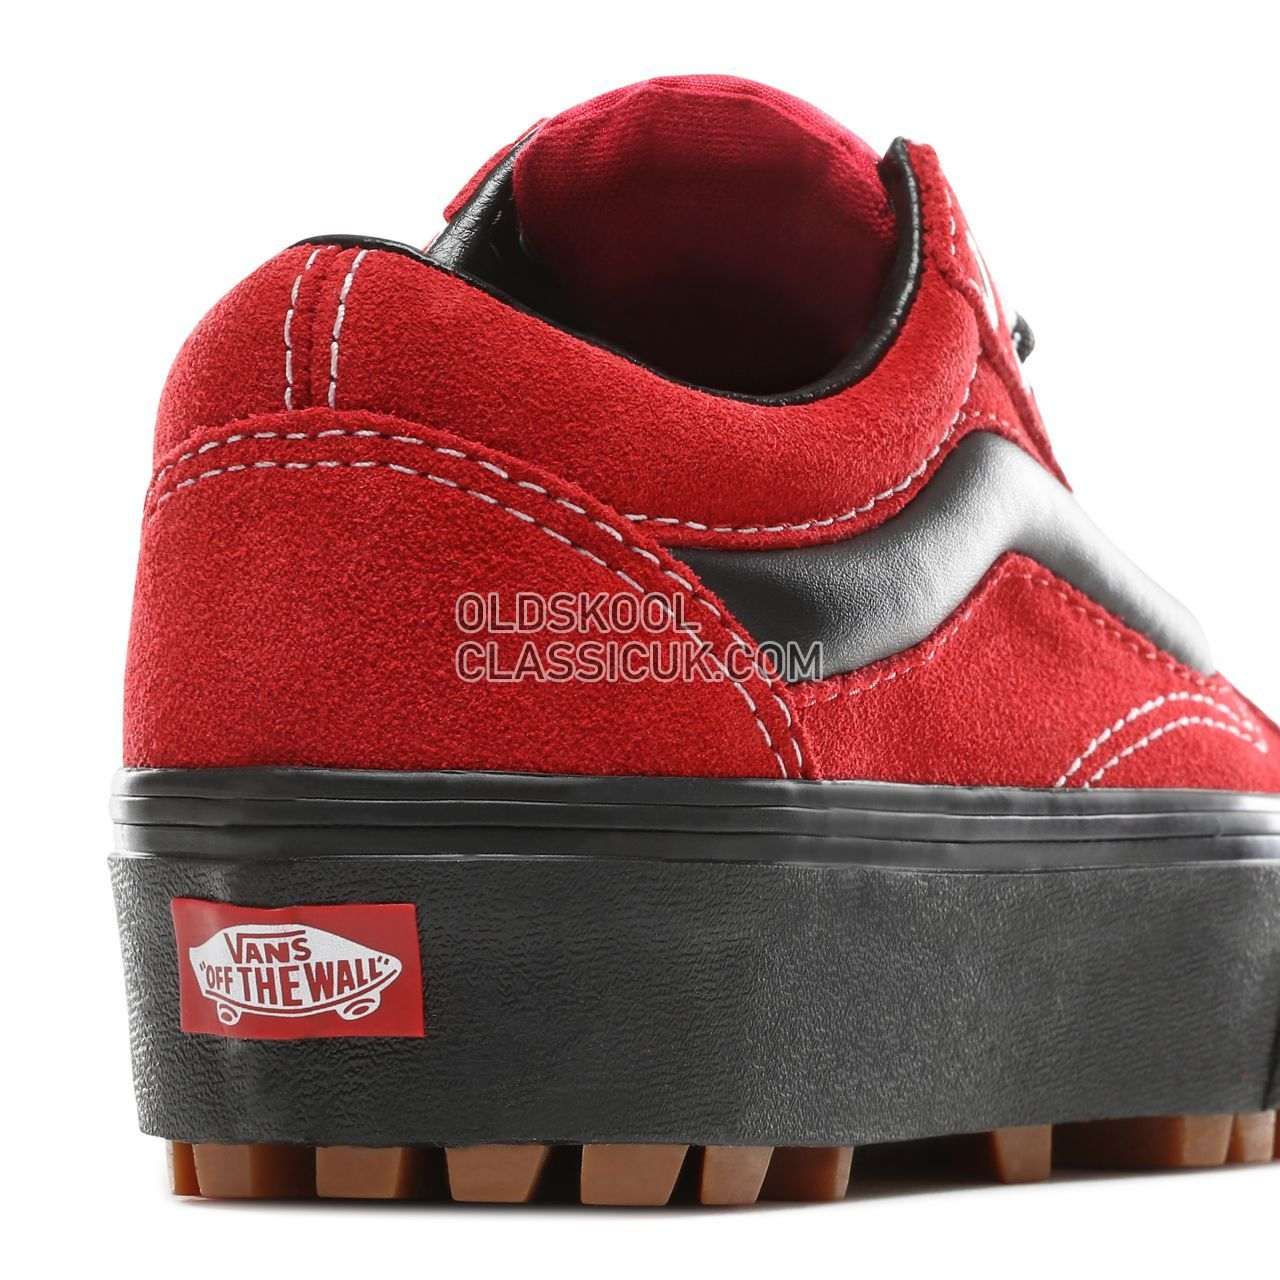 Vans 90s Retro Old Skool Lug Platform Sneakers Womens (90S Retro) Chili Pepper/Black VN0A3WLXVRX Shoes